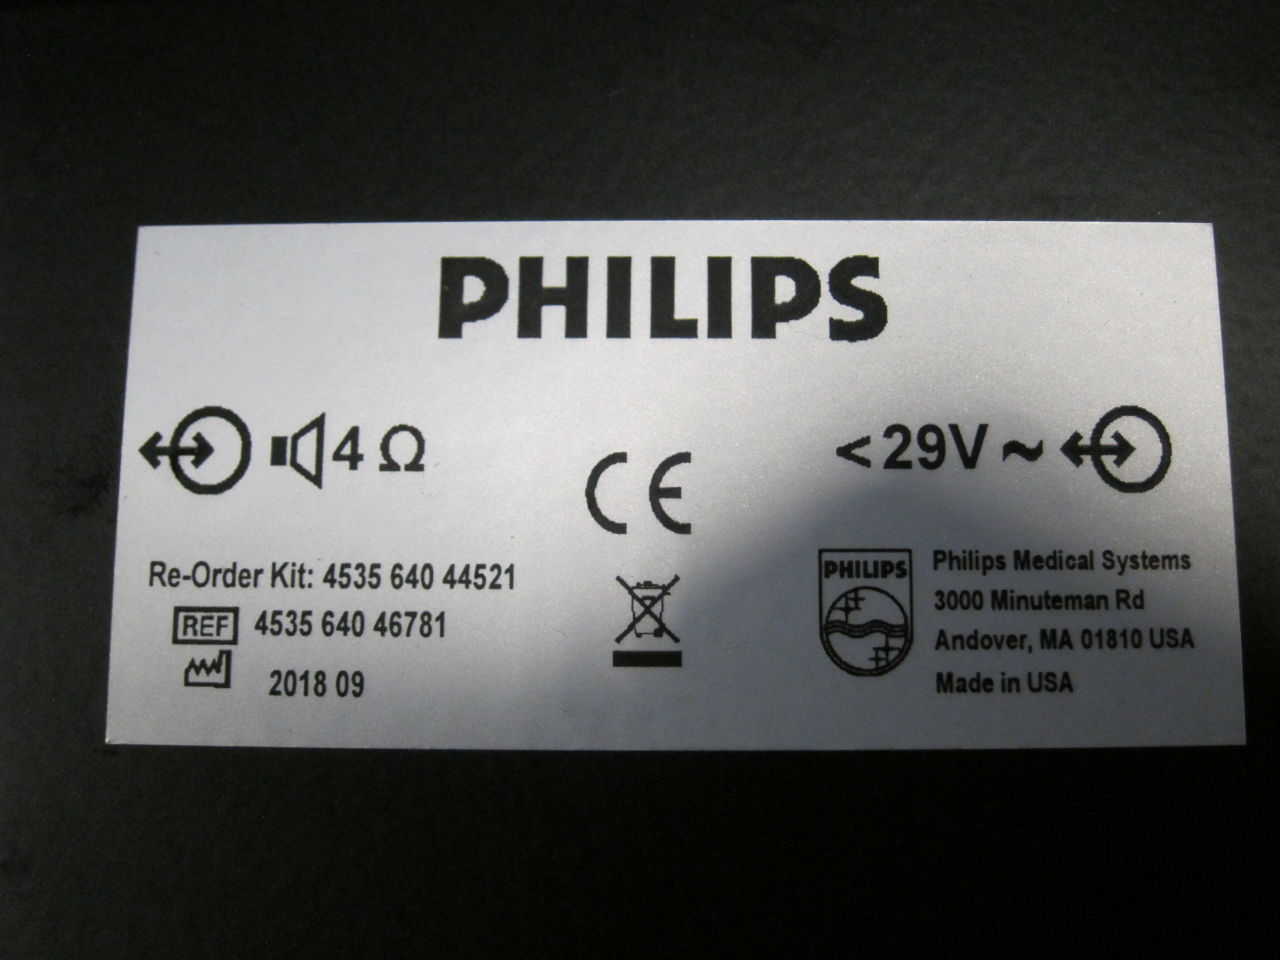 PHILIPS 4535 640 46781 Parts - Lot of 2 Cath Lab